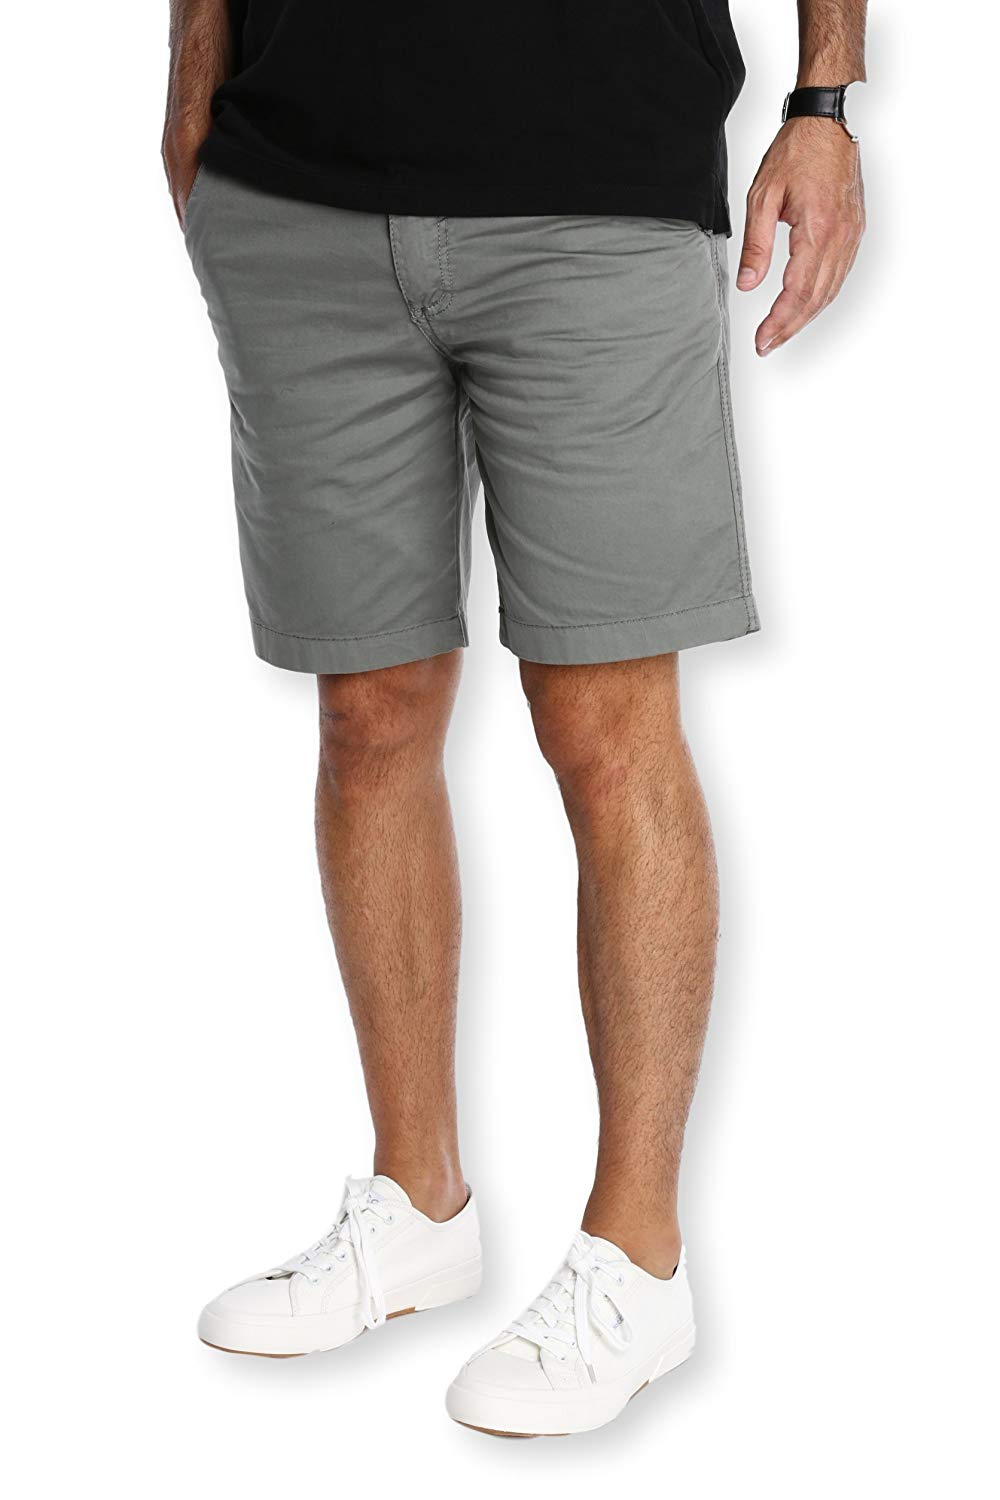 Pembrook Men Shorts